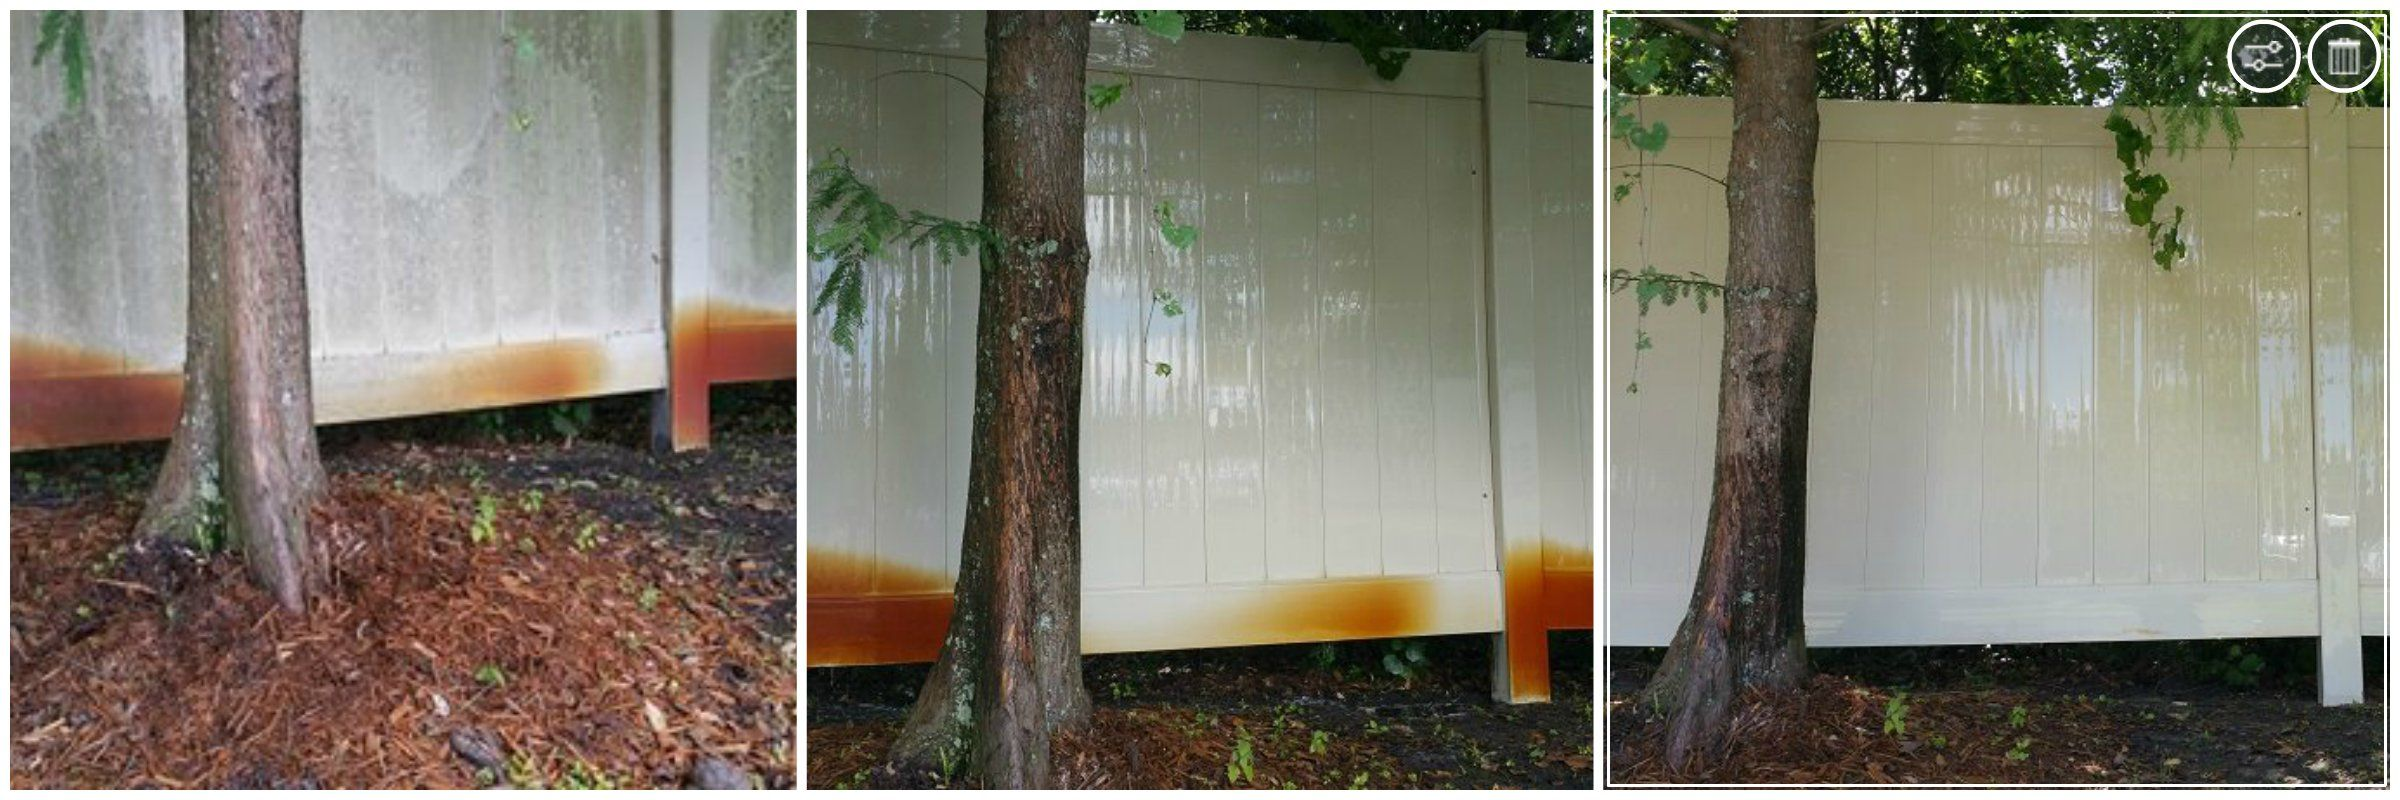 Cleaning Mold Mildew And Rust From A White Vinyl Fence